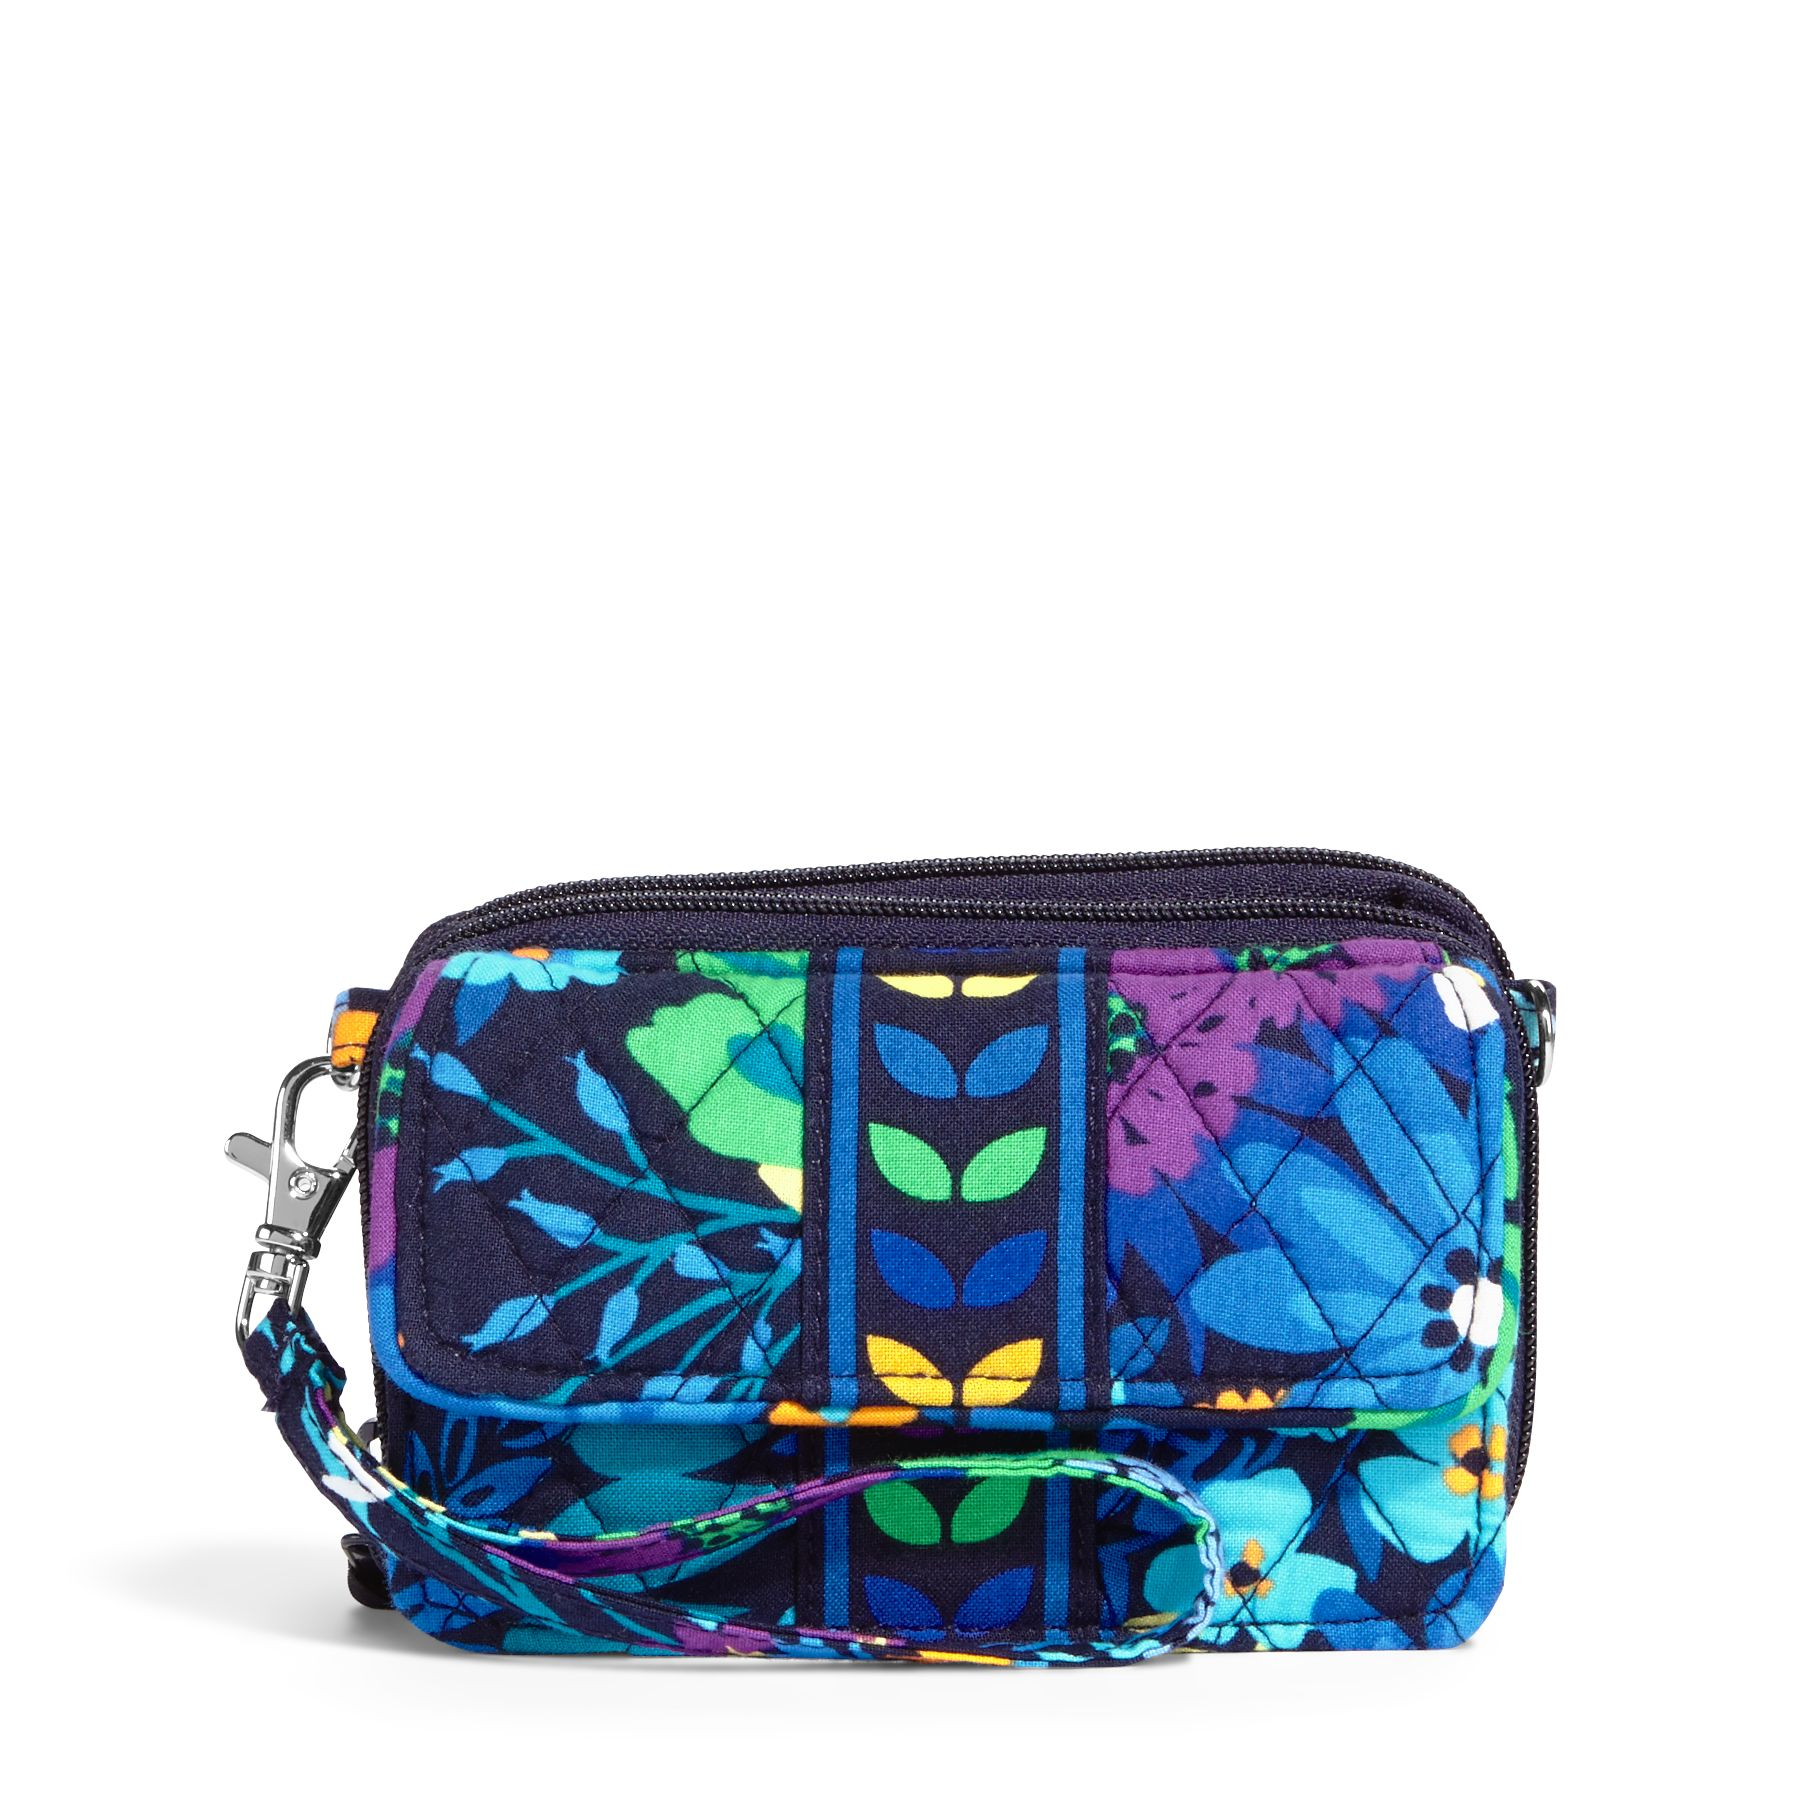 Vera Bradley All in One Crossbody and Wristlet in Midnight Blues